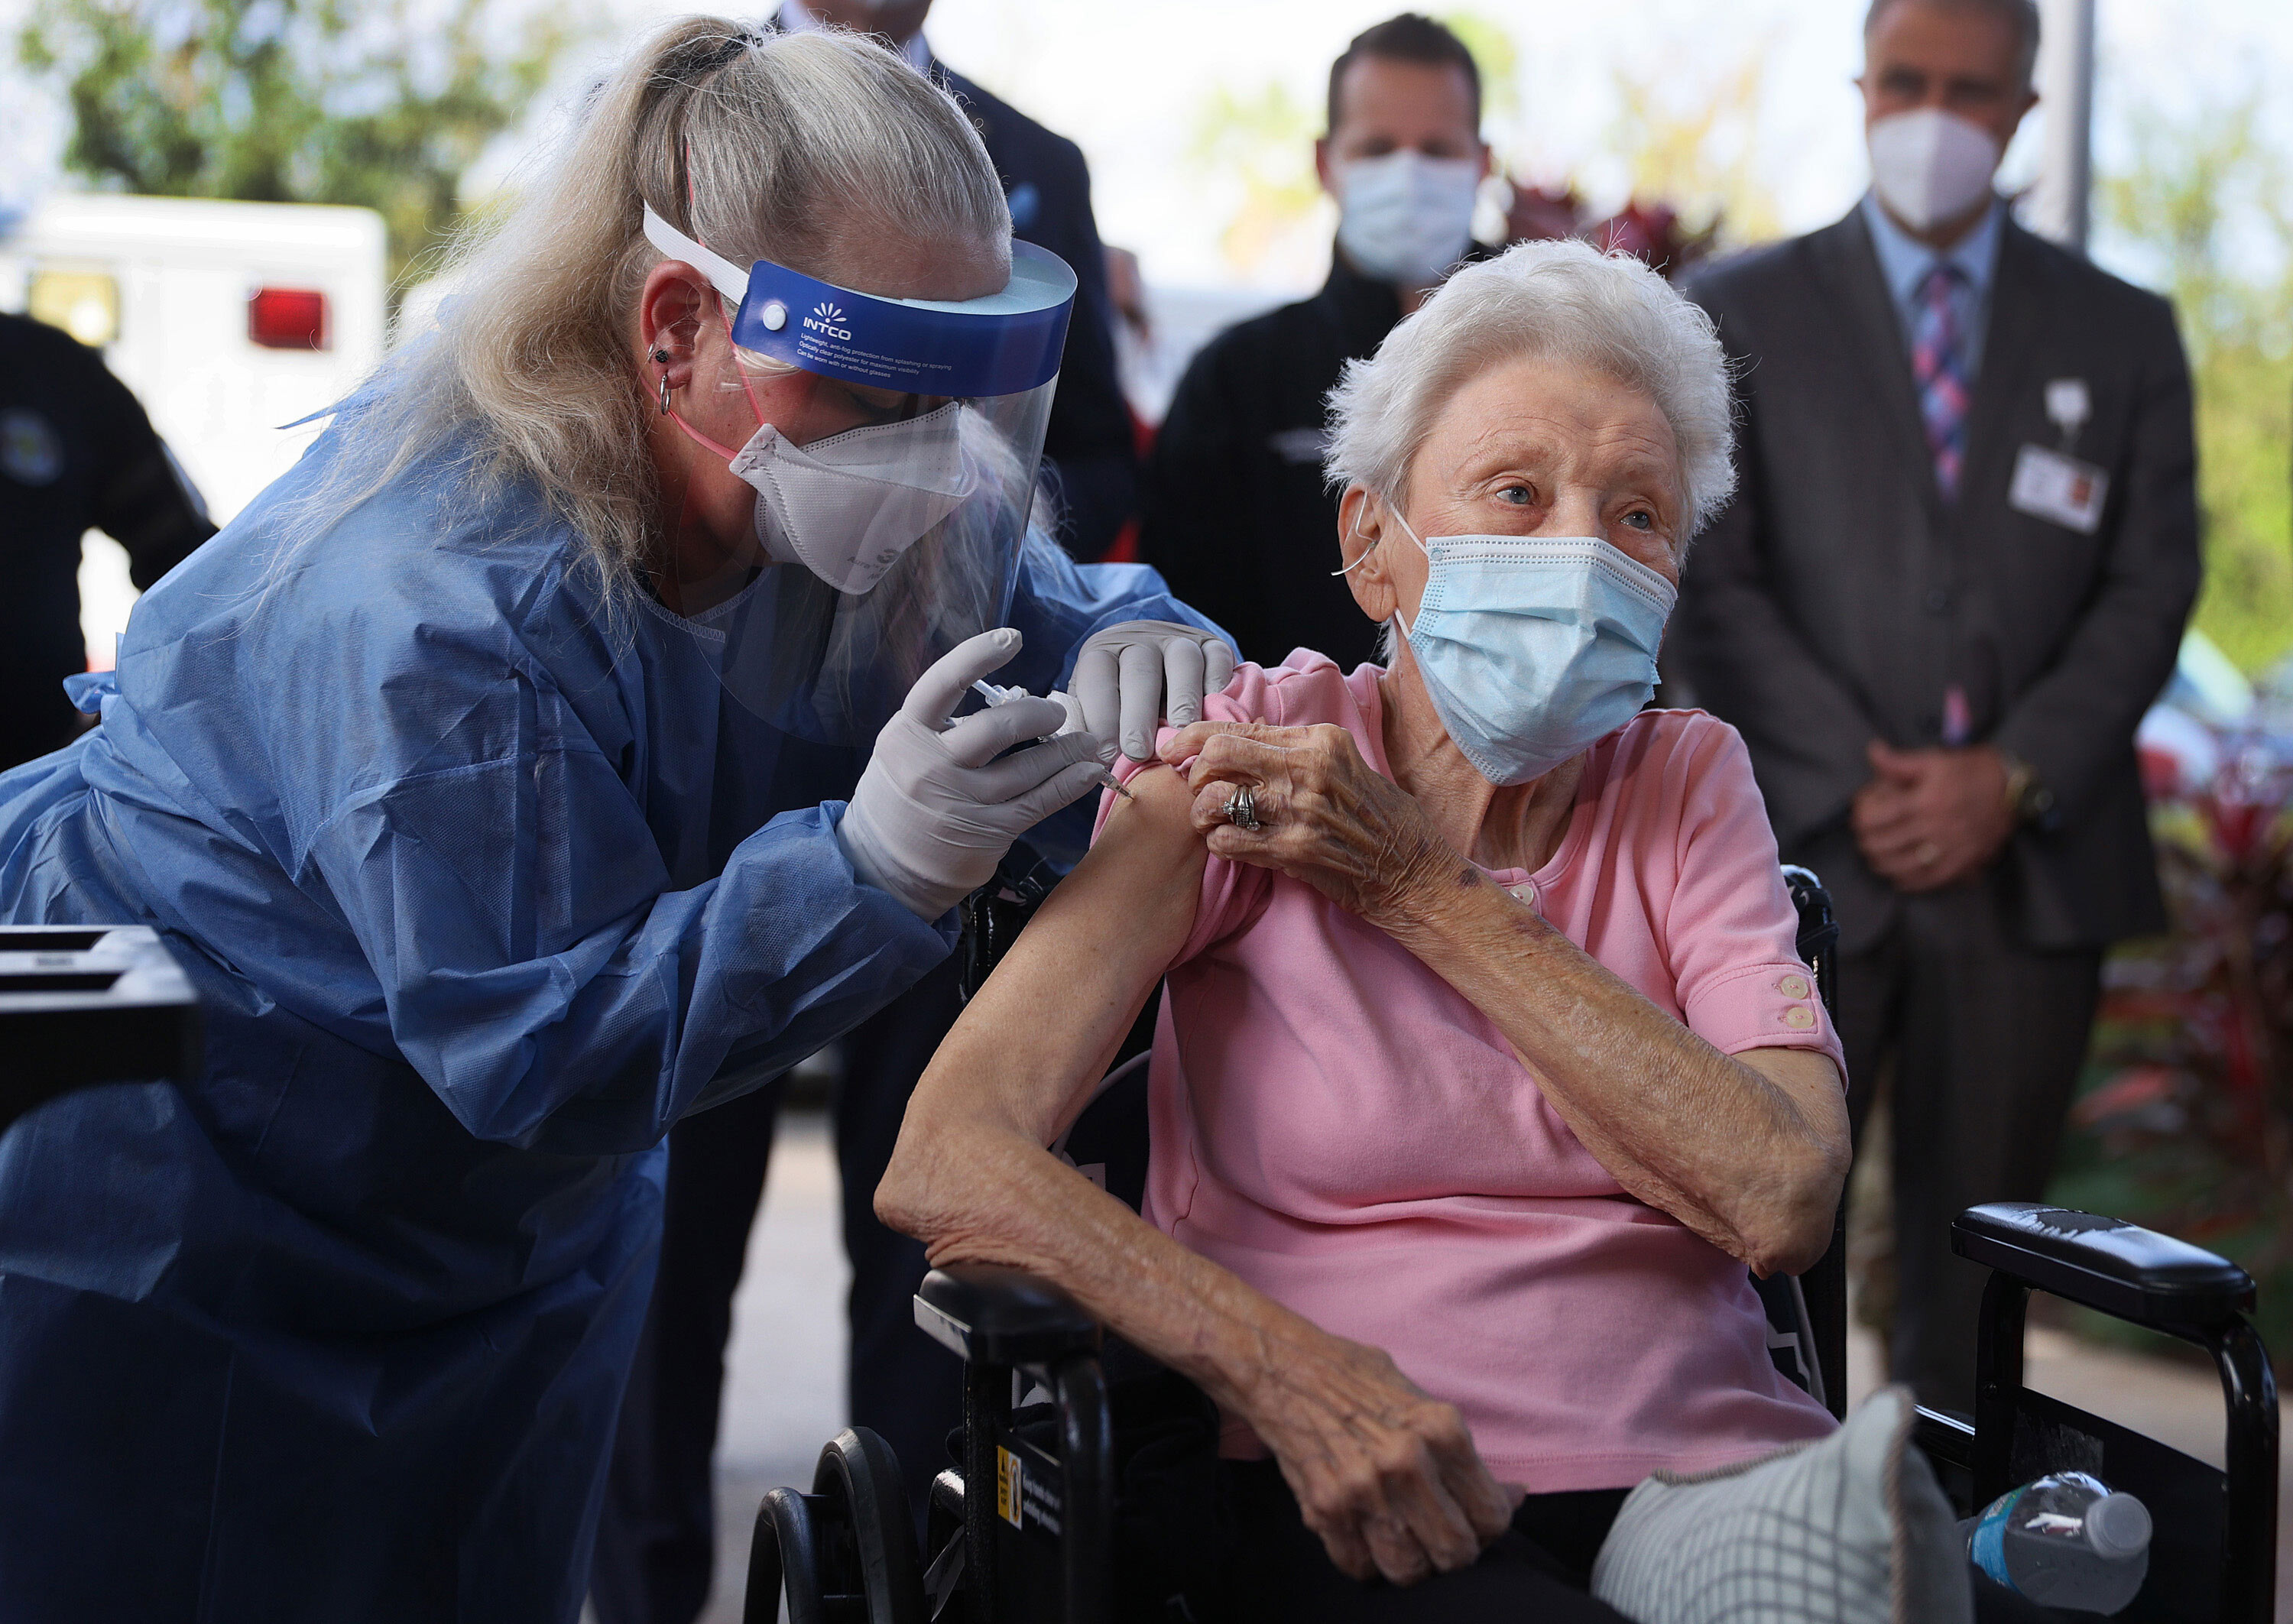 Why older people are so much more vaccinated than younger people